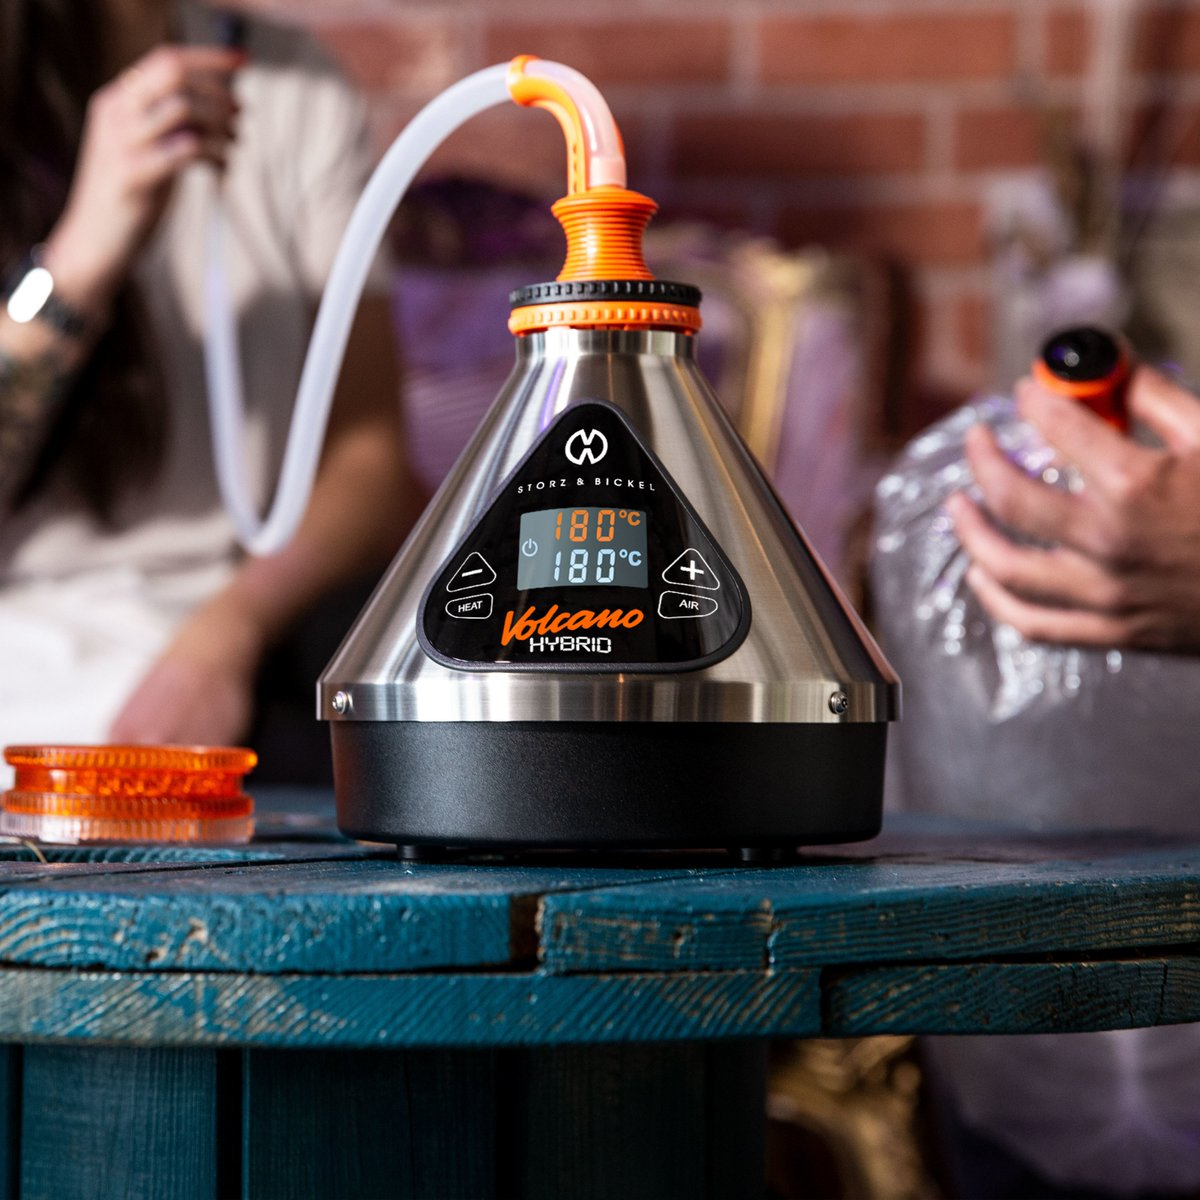 Vaporizers are modern way of using cannabis. Source: Storz & Bickel